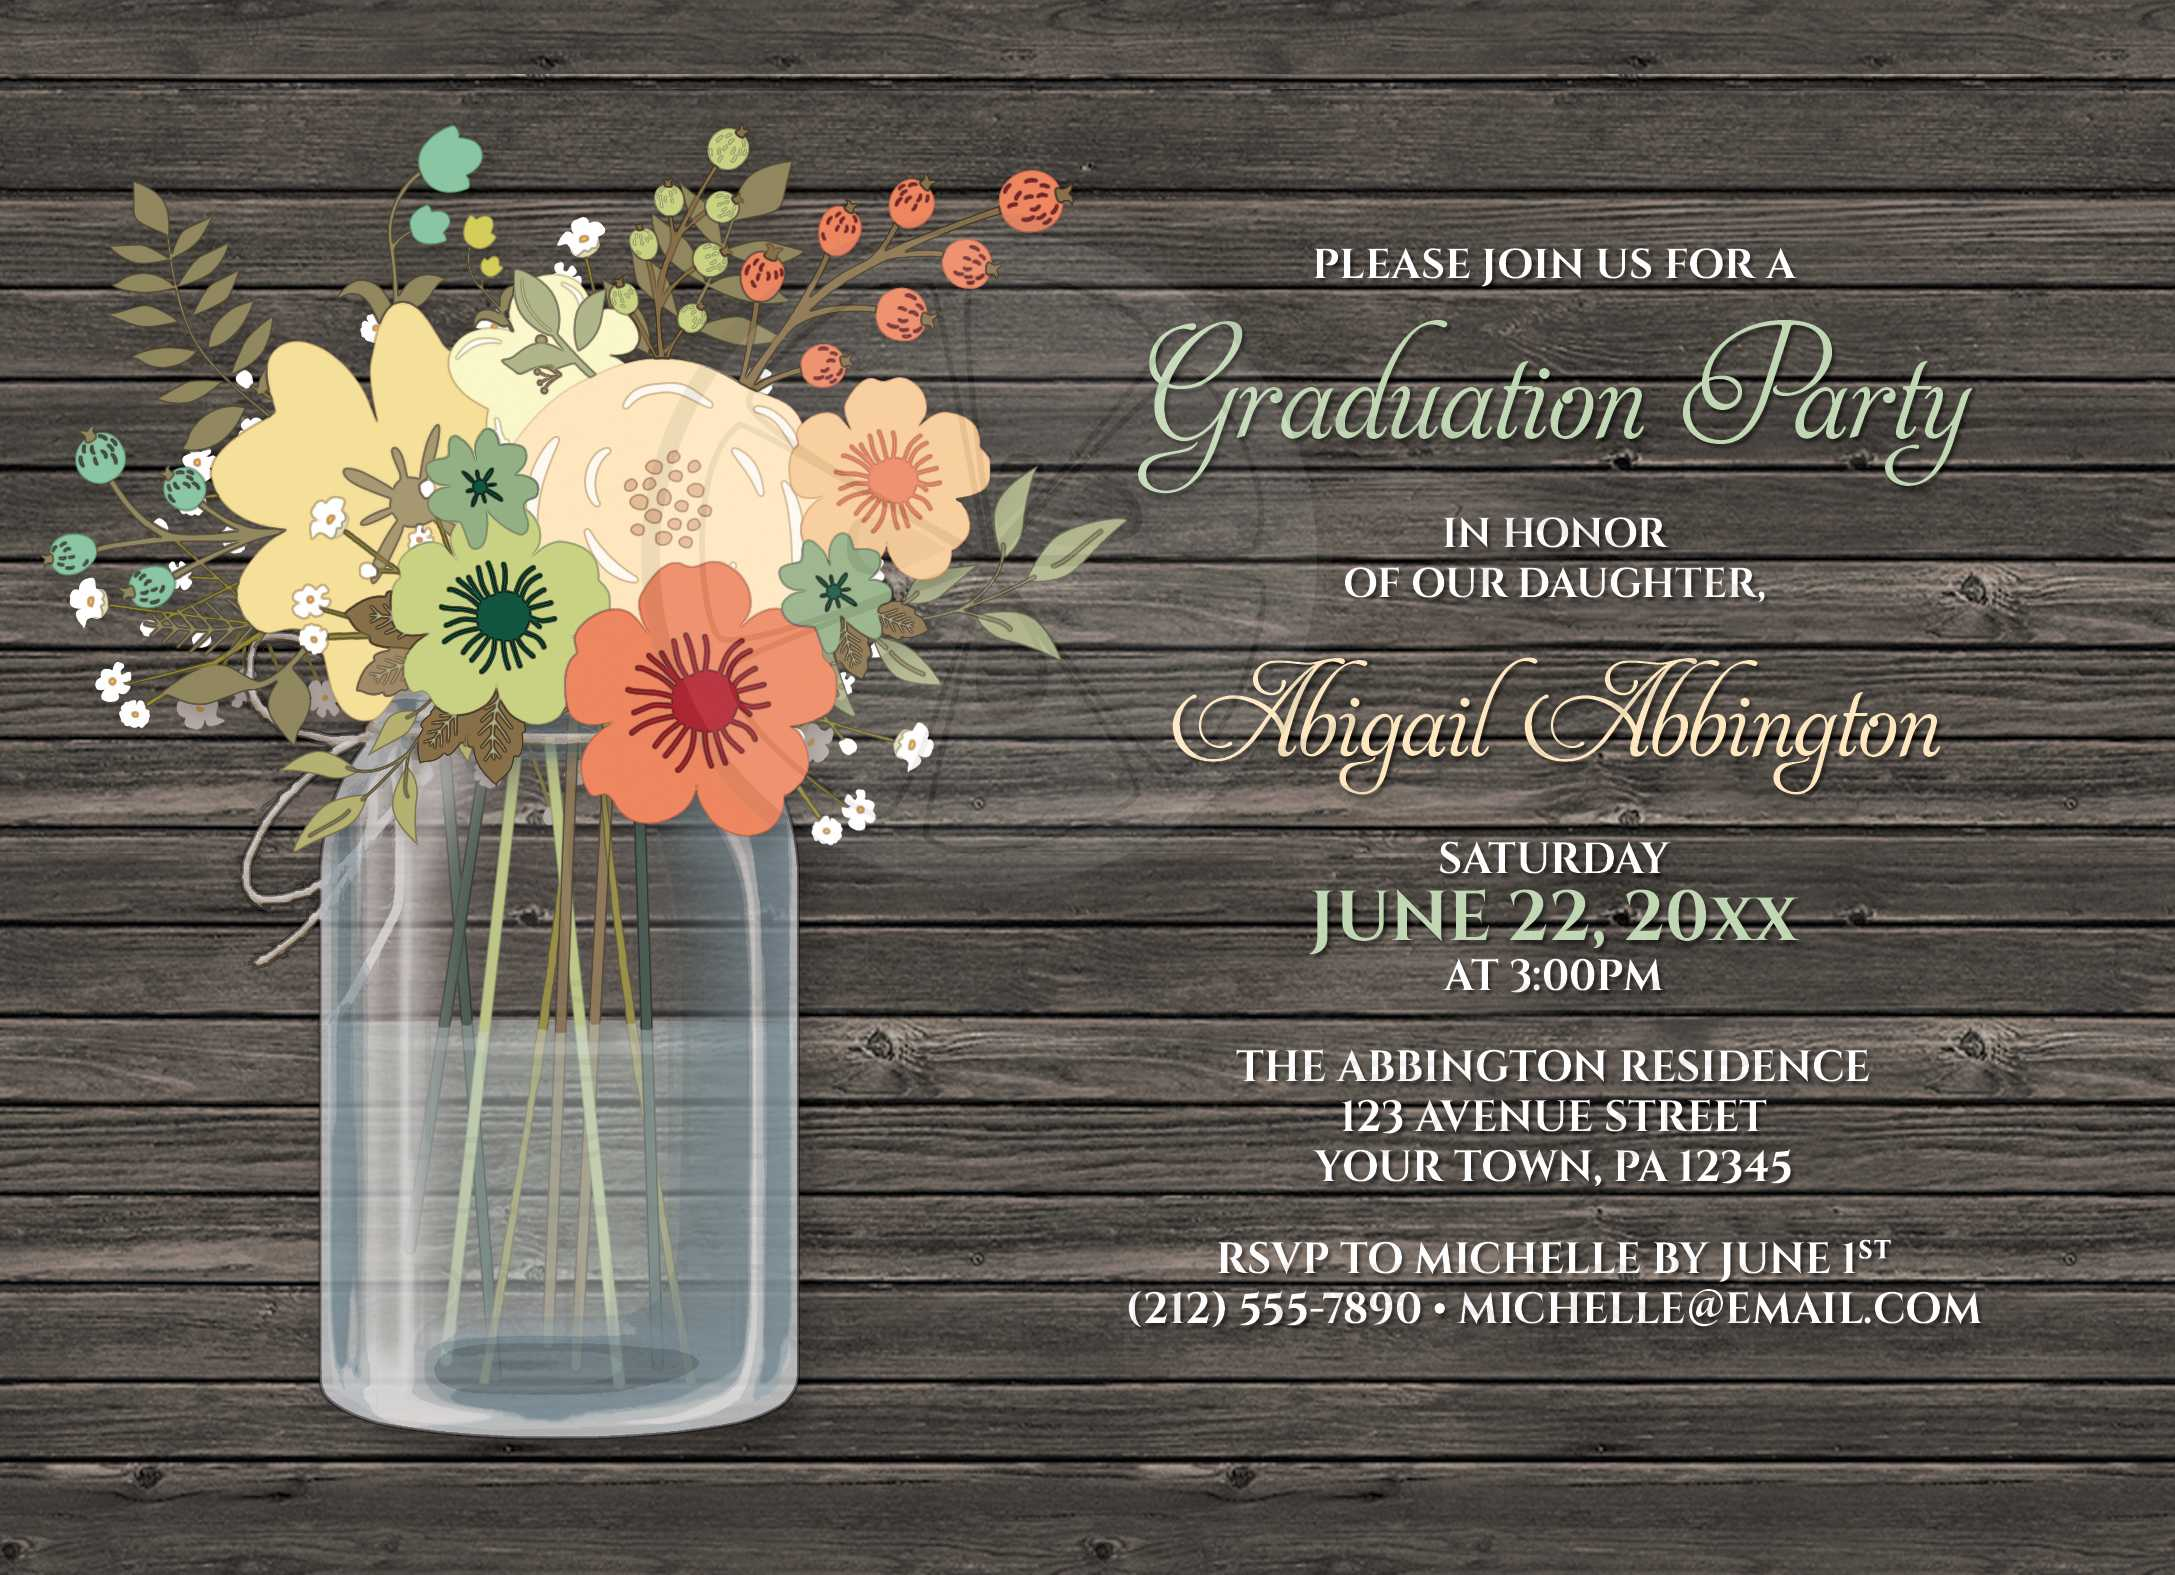 Graduation Party Invitations Rustic Floral Wood Mason Jar – Flower Party Invitations